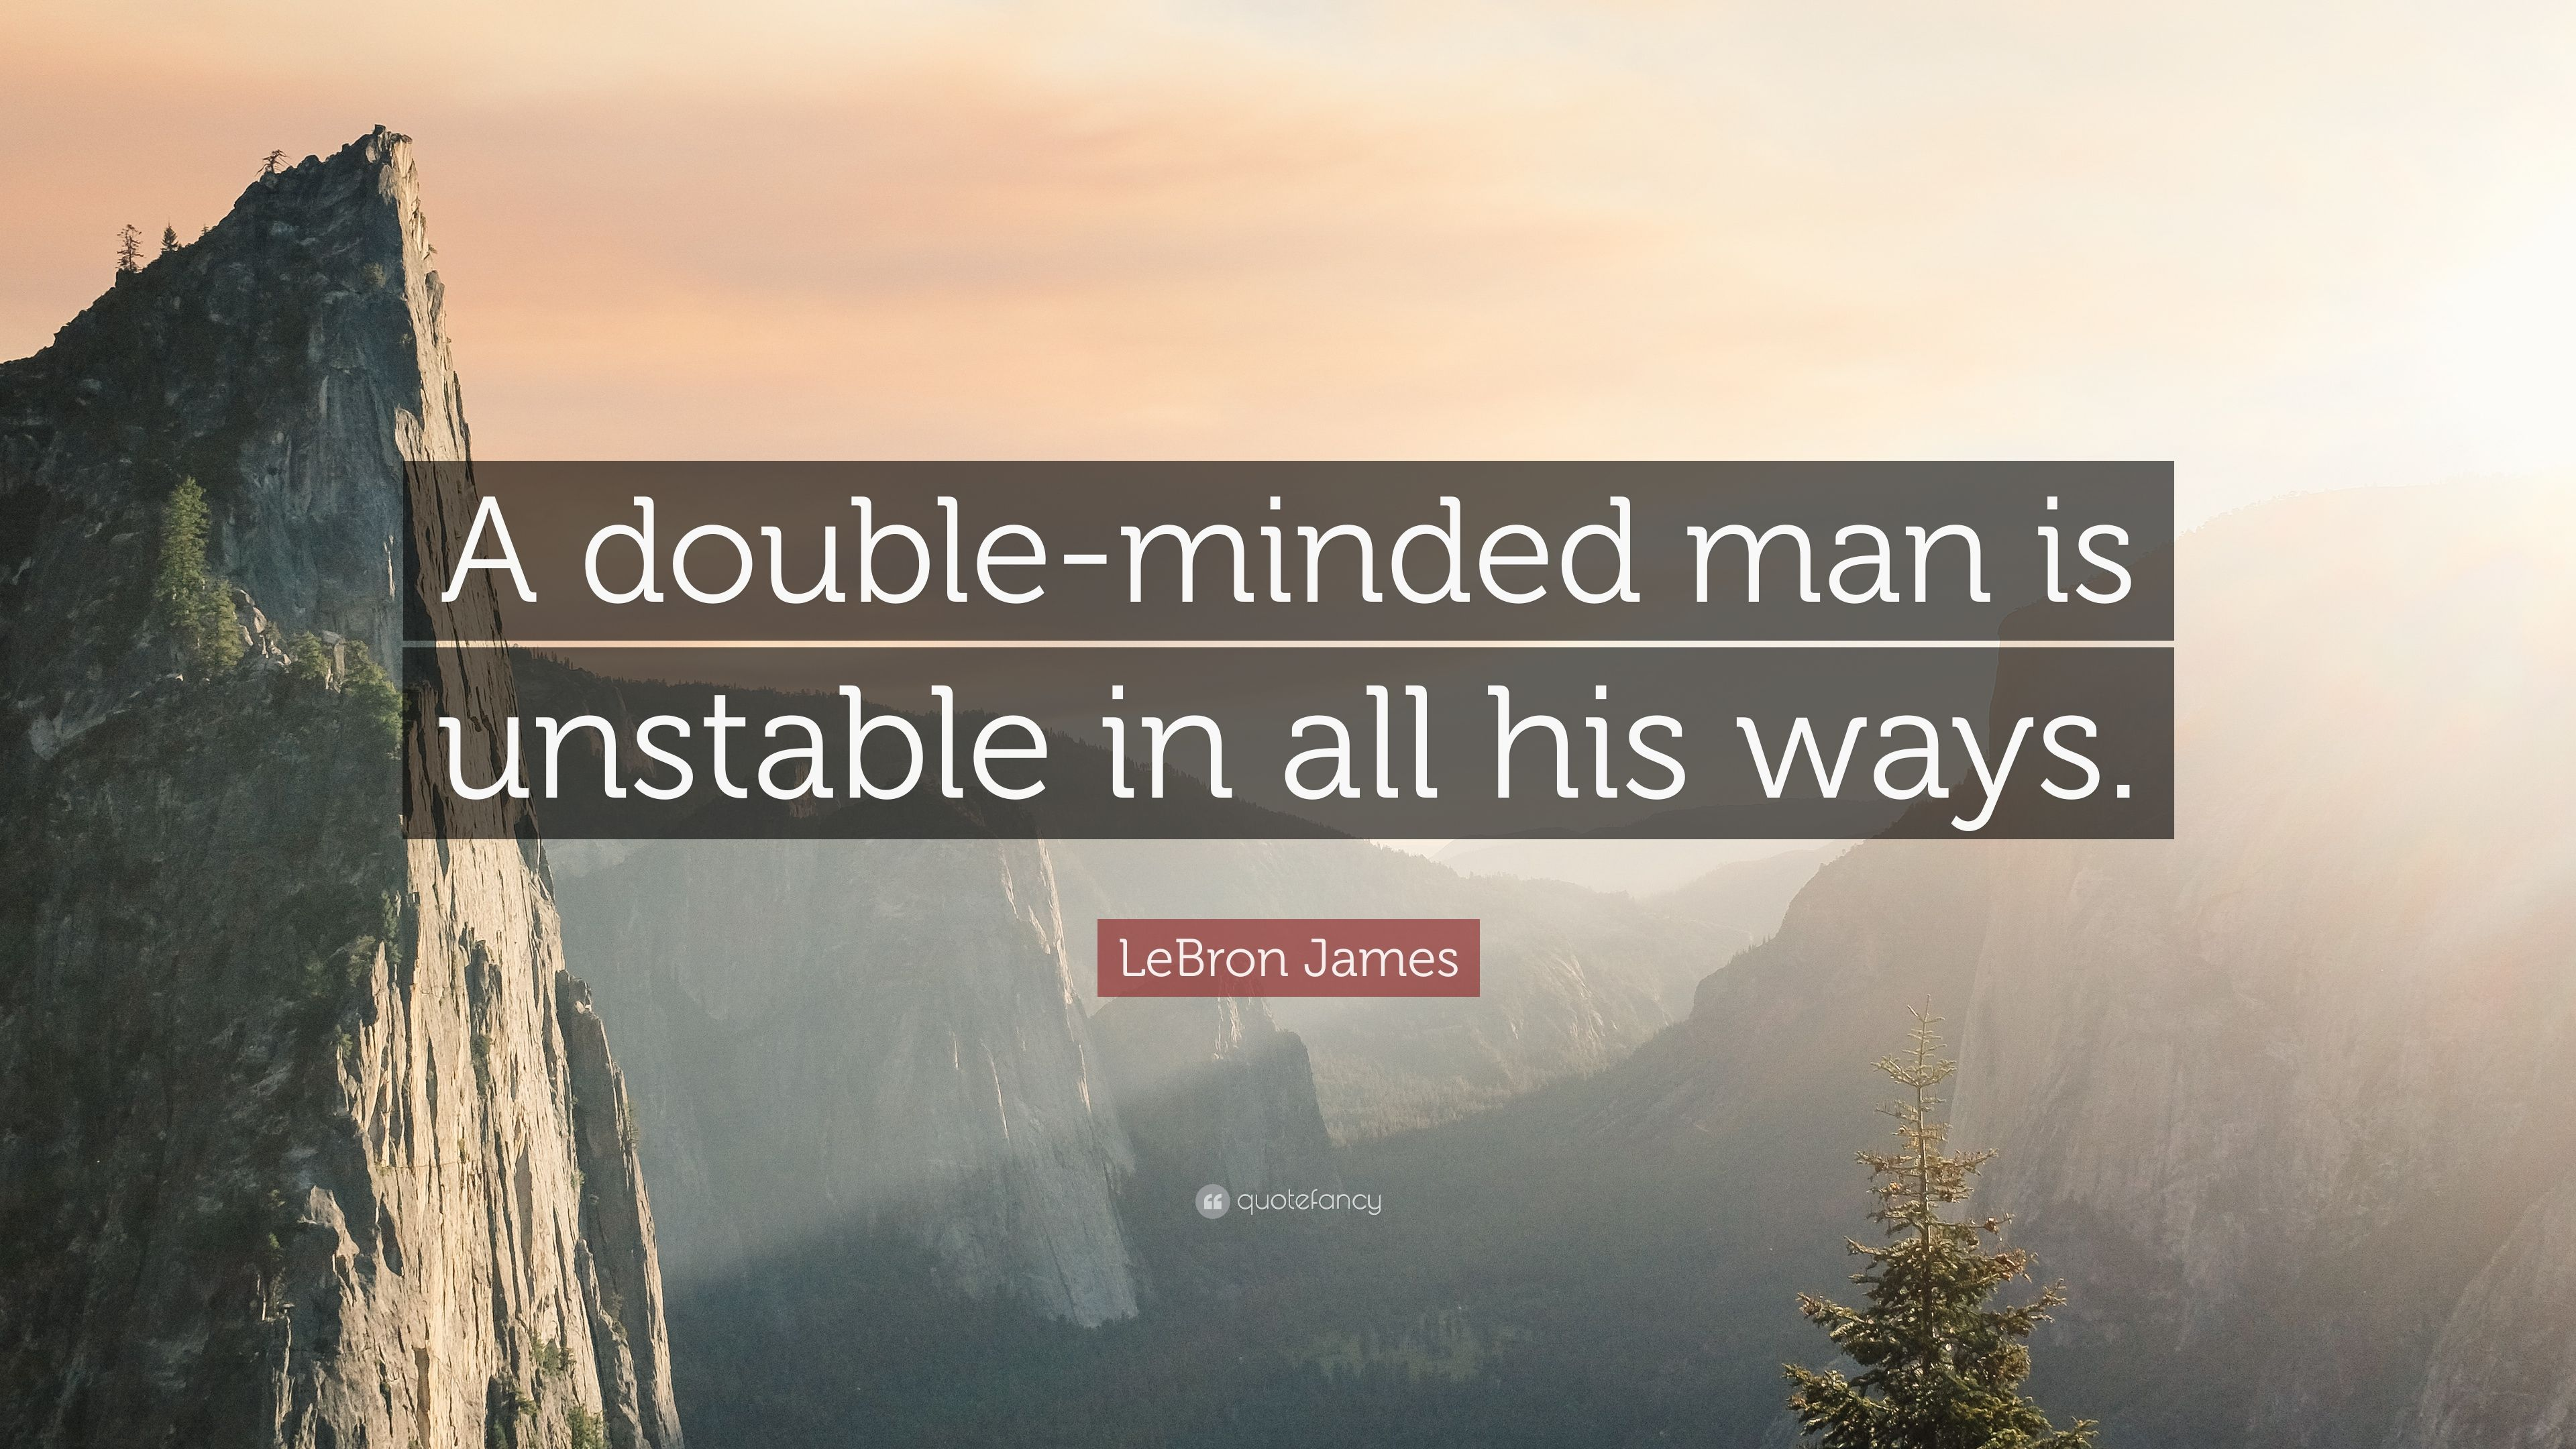 LeBron James Quote: A double-minded man is unstable in